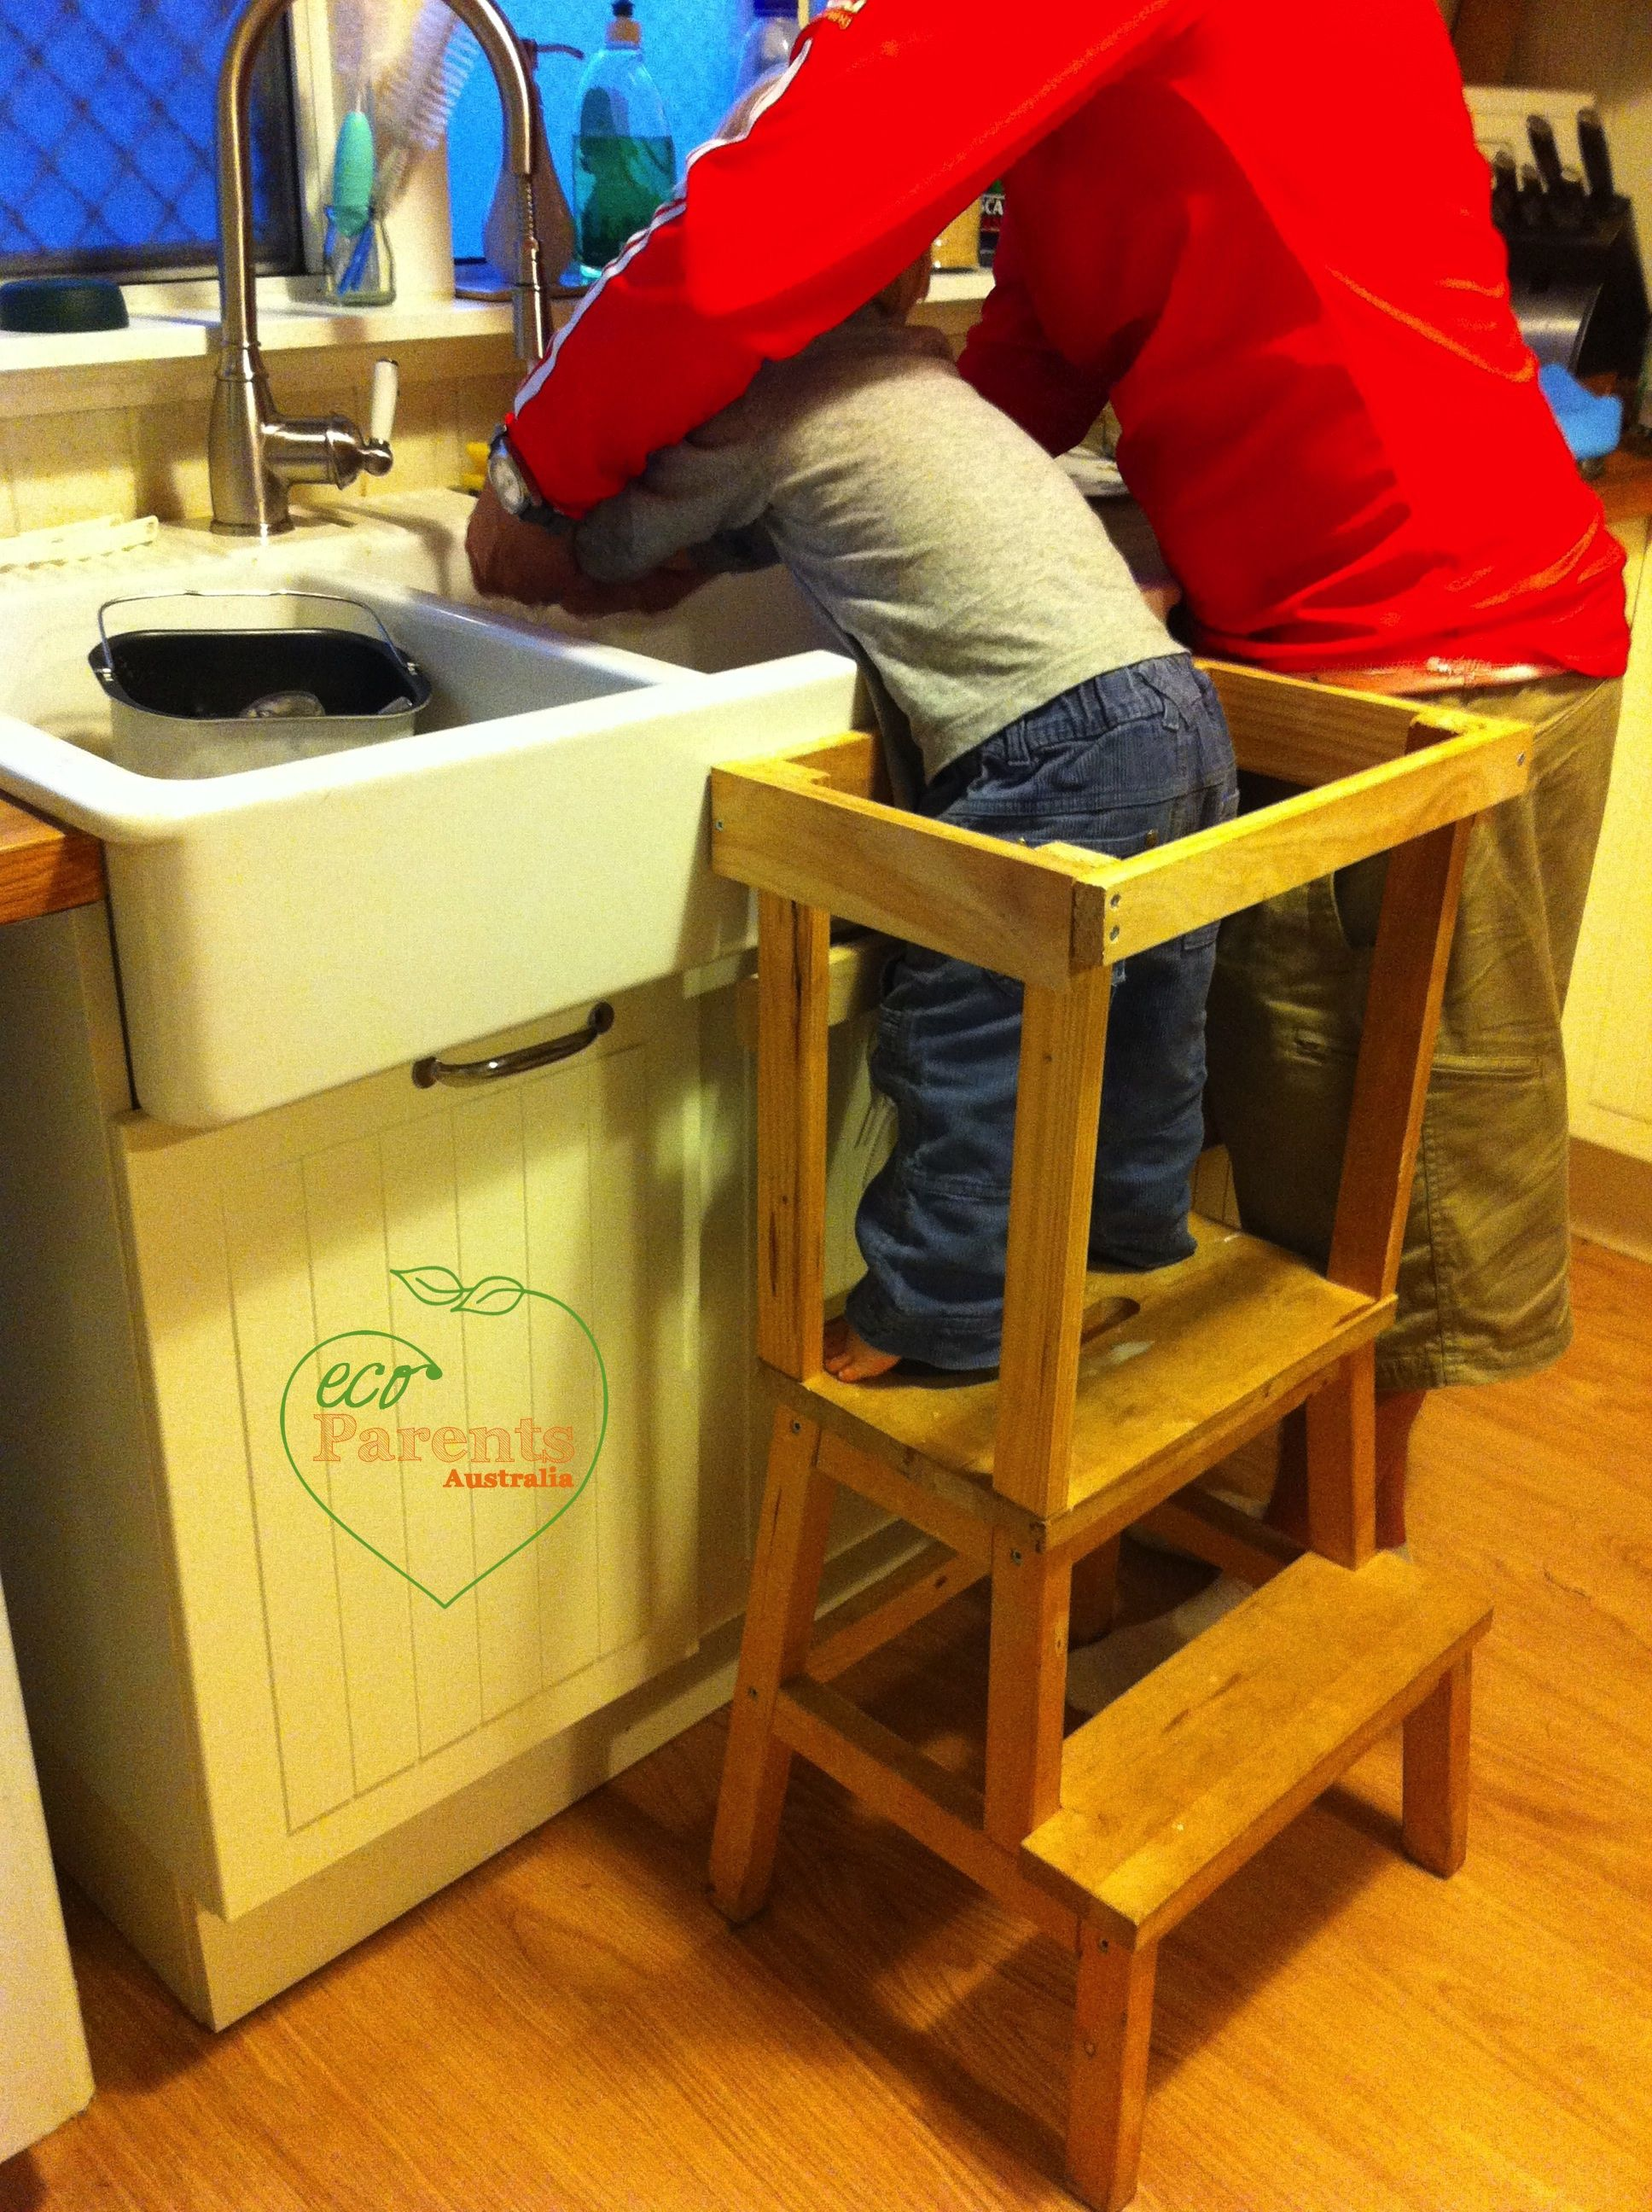 An Ikea stool is easy to convert to a kitchen helper and